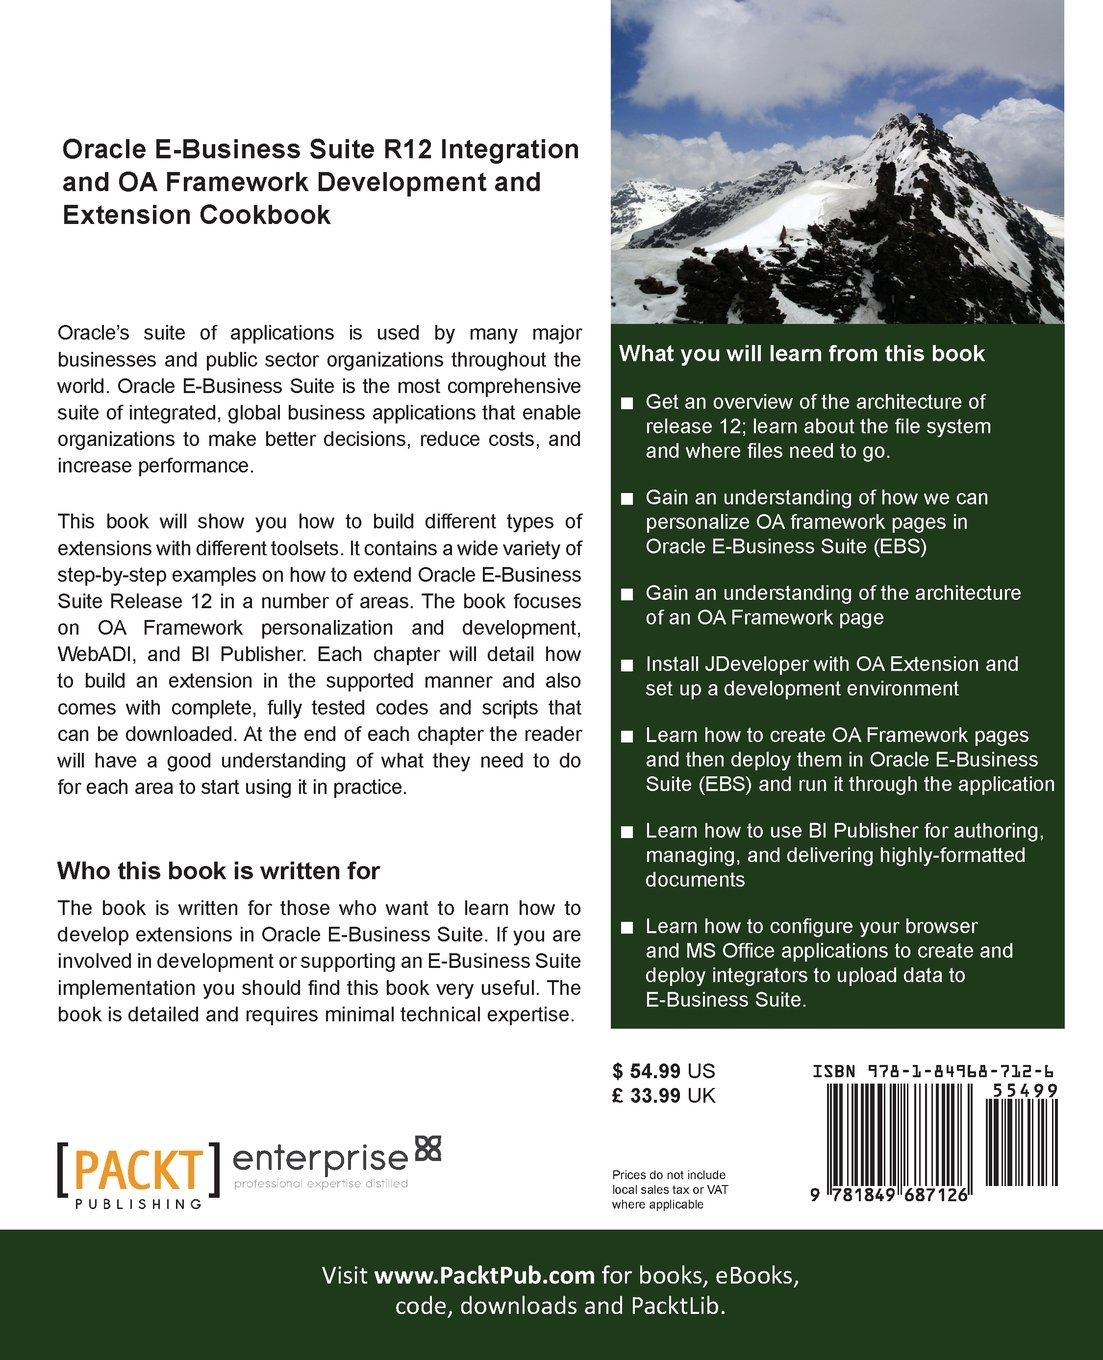 Oracle E-Business Suite R12 Integration and OA Framework Development and  Extension Cookbook: Andy Penver: 9781849687126: Amazon.com: Books